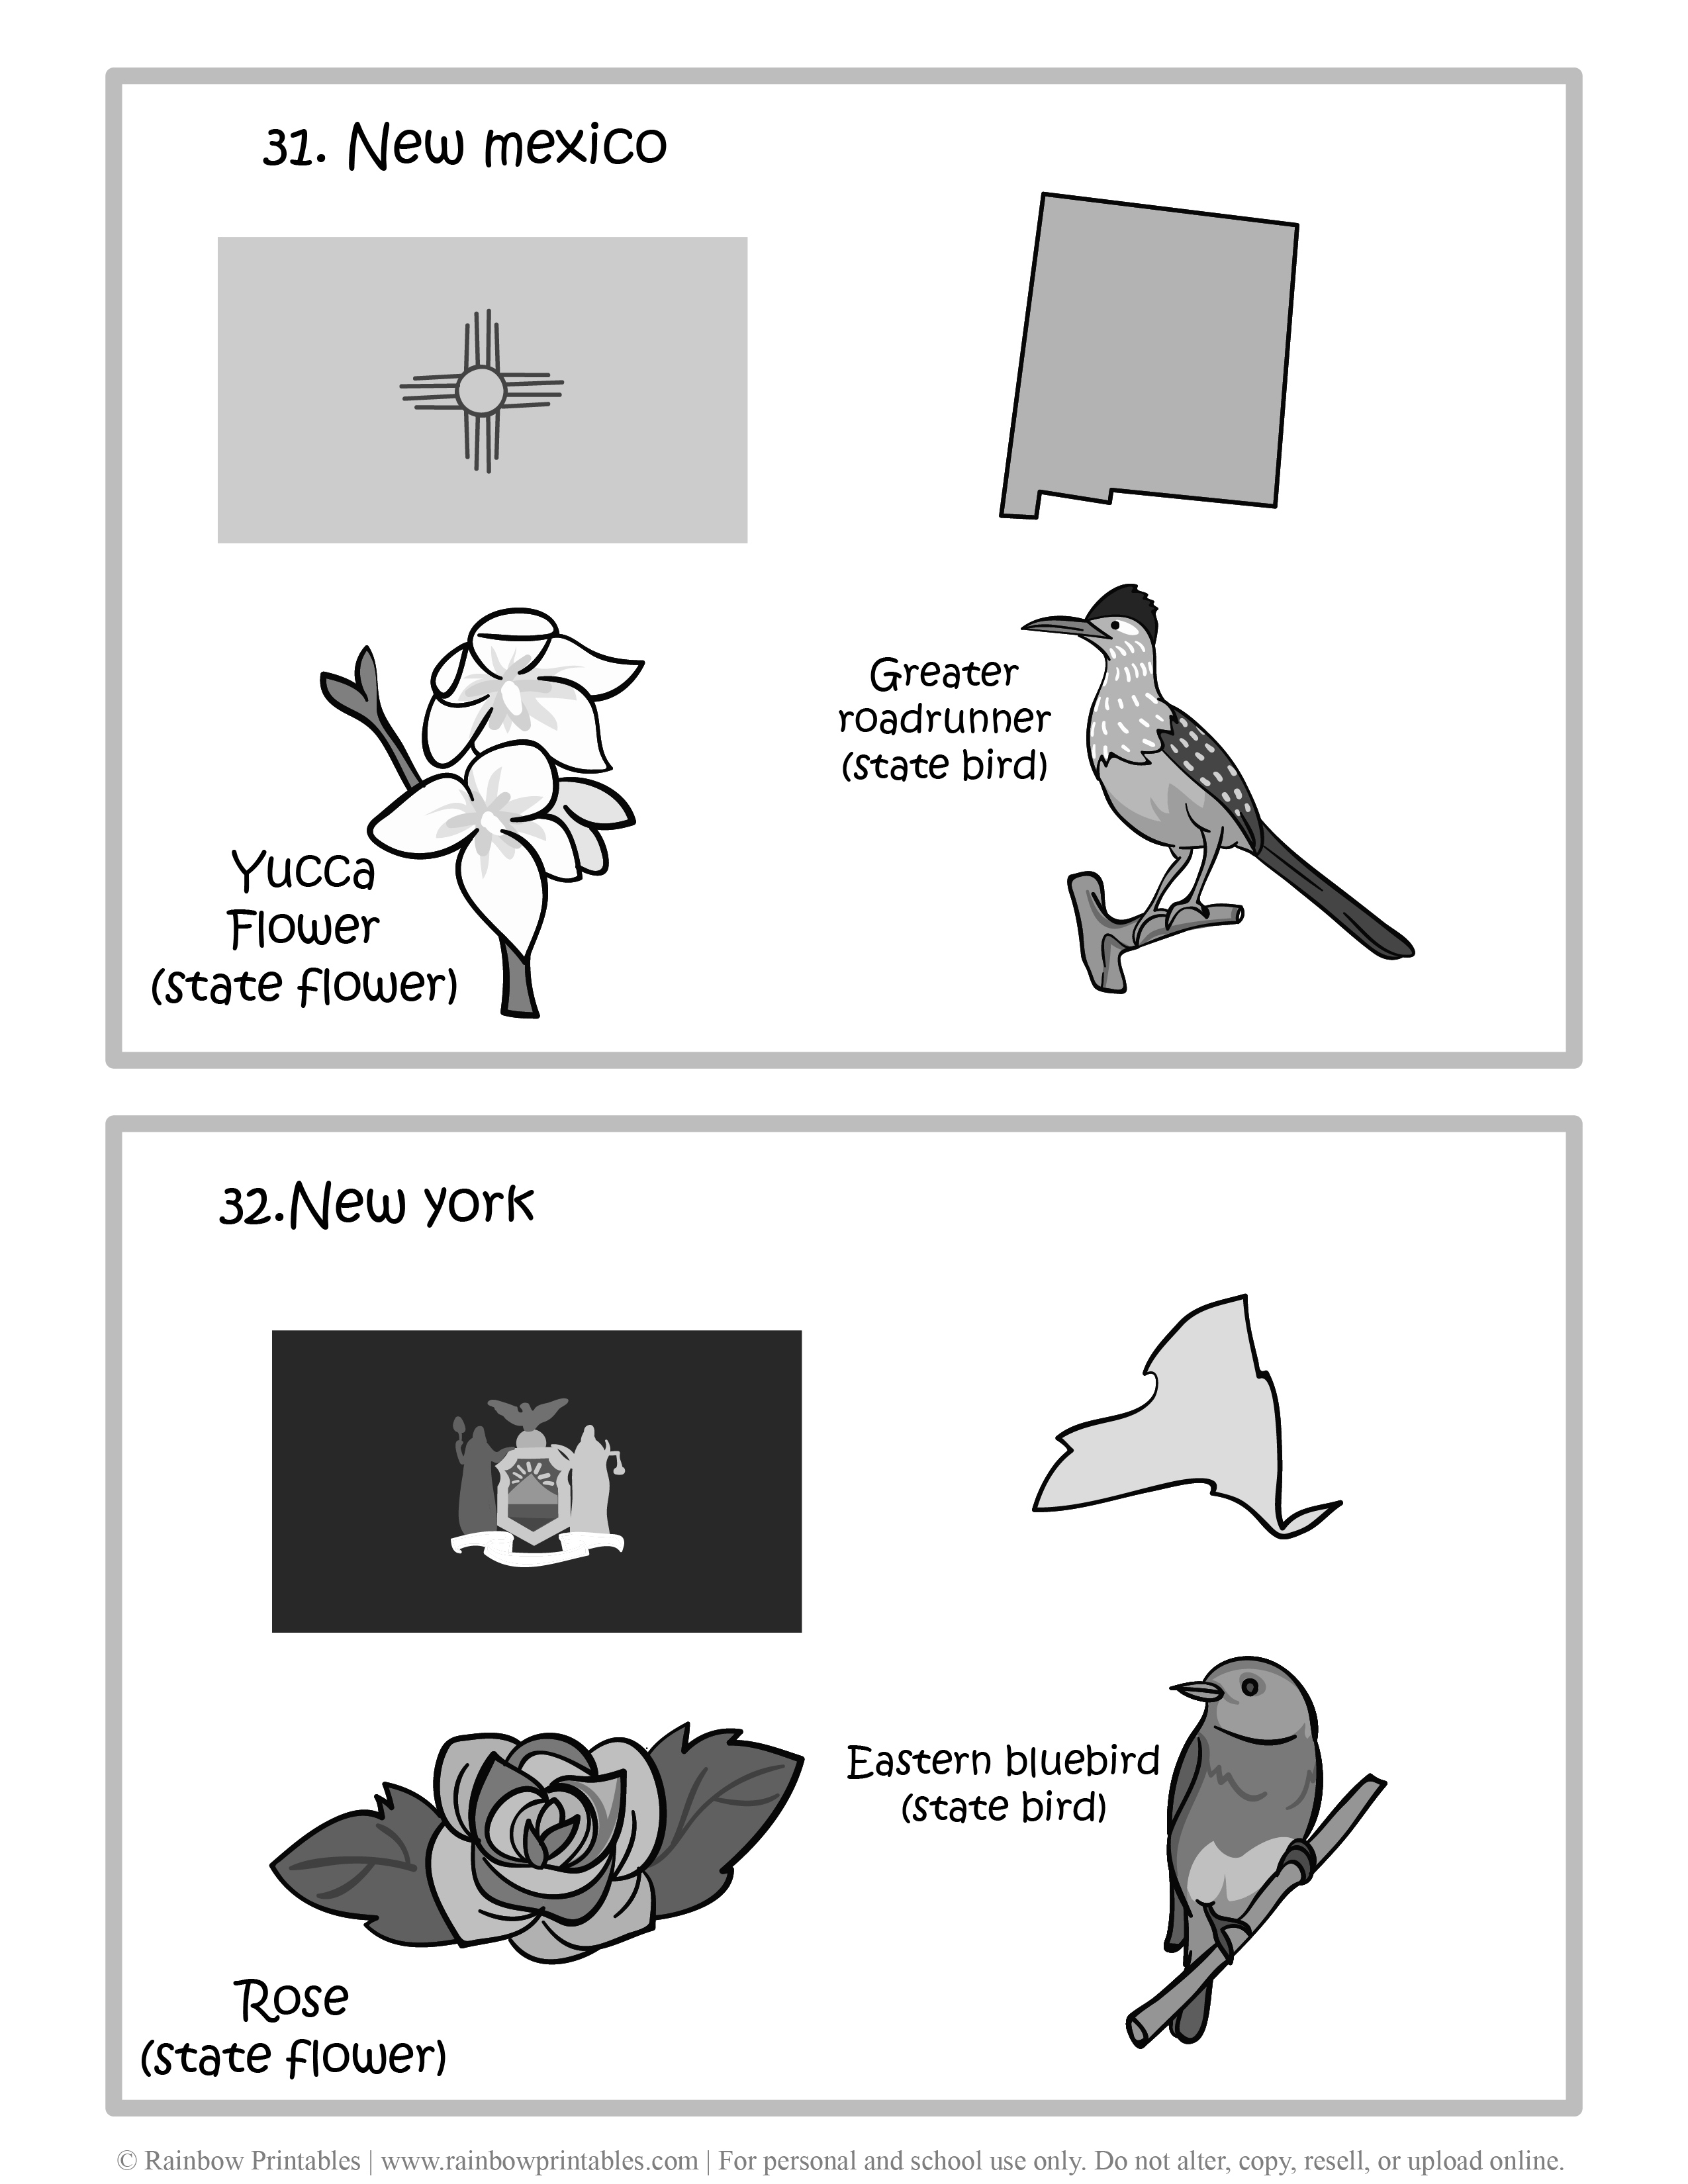 New Mexico, New York, 50 US State Flag, State Bird, State Flower, United States of America - American States Geography Worksheet Class Lesson Printables Flashcards Black White